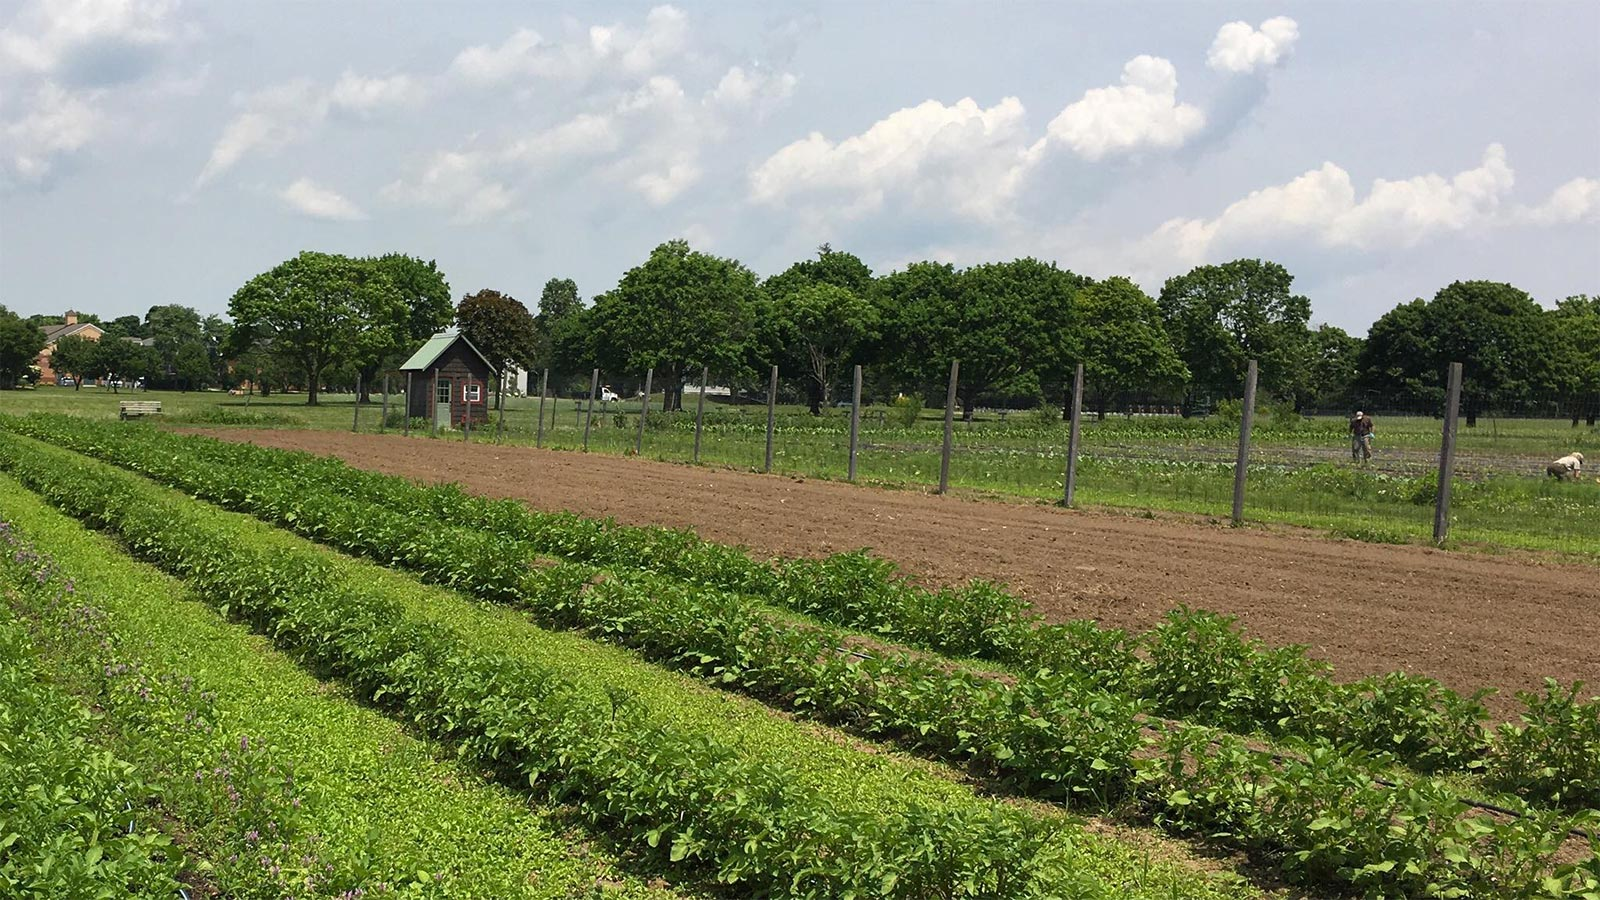 Chef Tom Schaudel to offer farm-to-table recipes for Homecoming Farm event